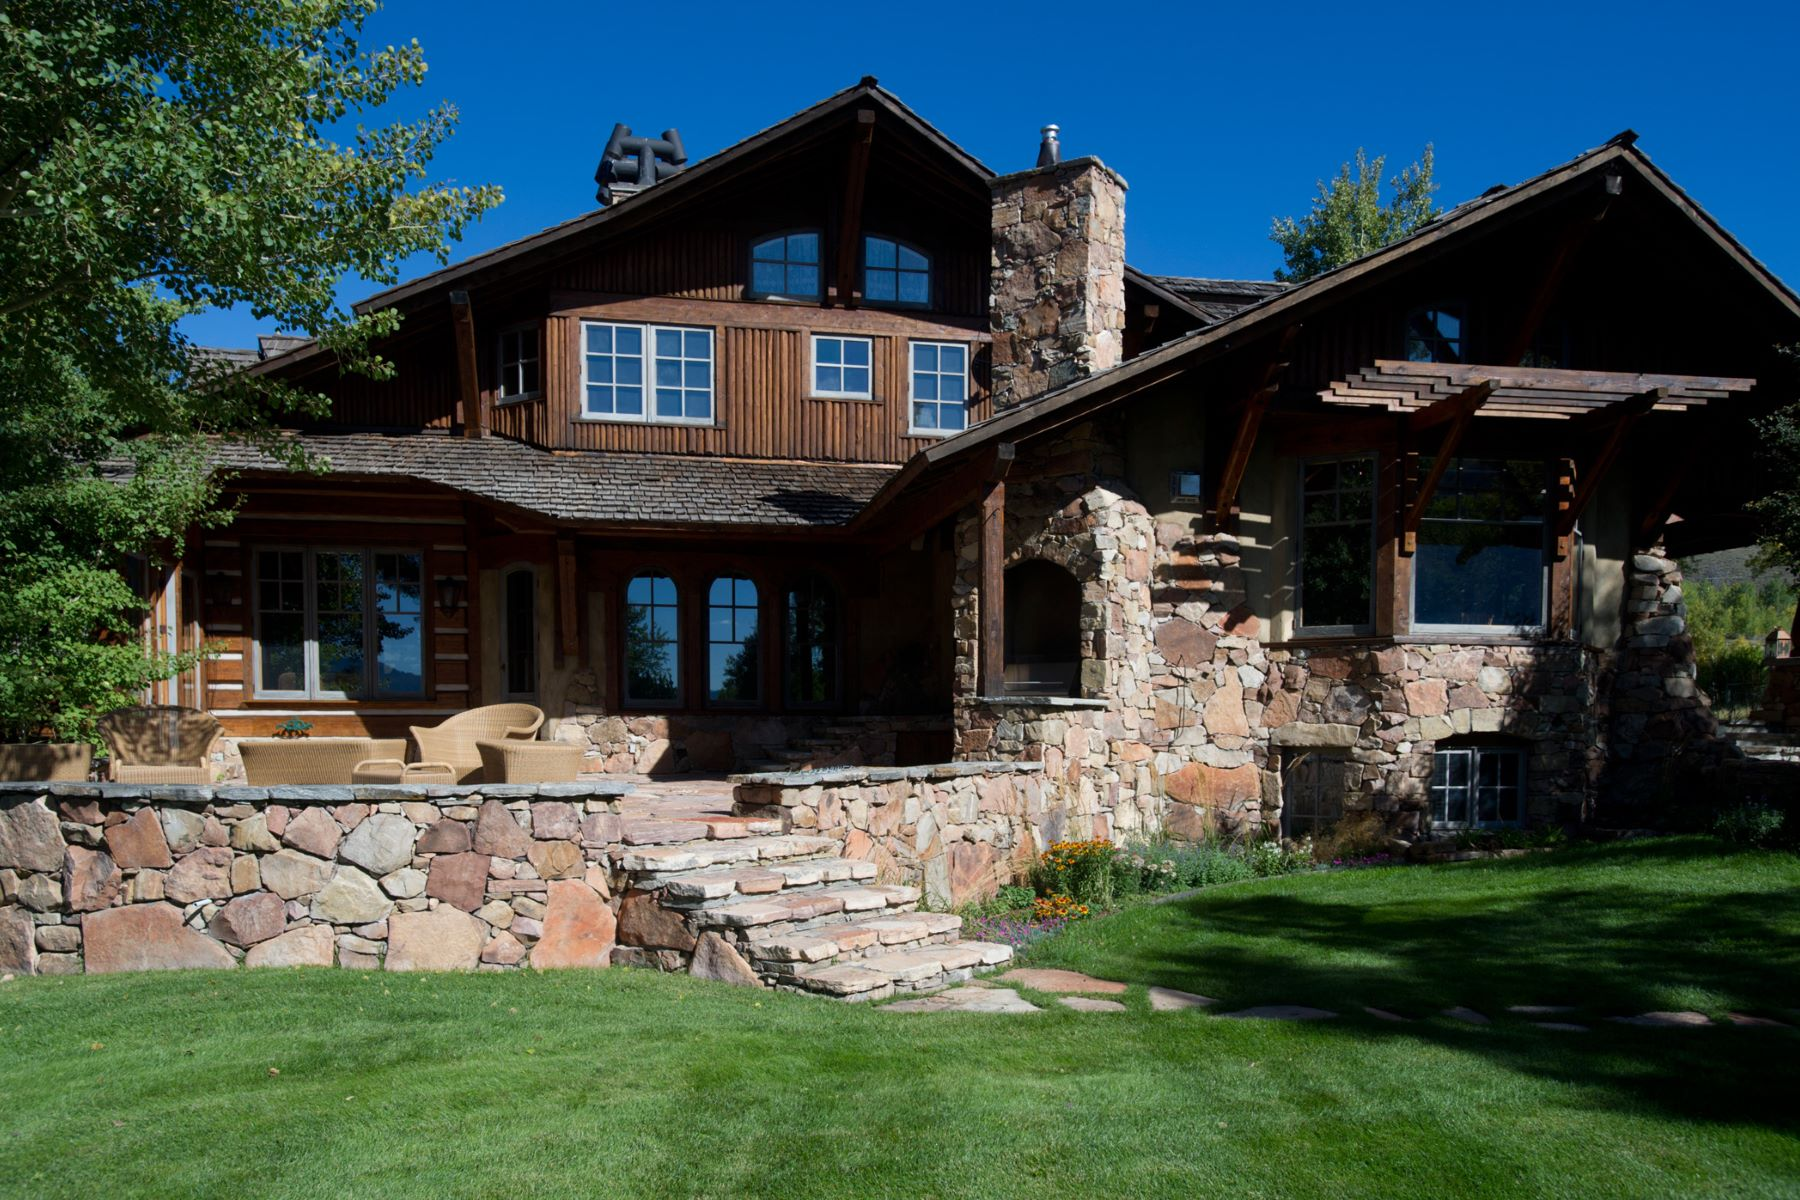 Single Family Home for Sale at Riverbend Ranch 13675 S River Bend RD Jackson, Wyoming 83001 United States